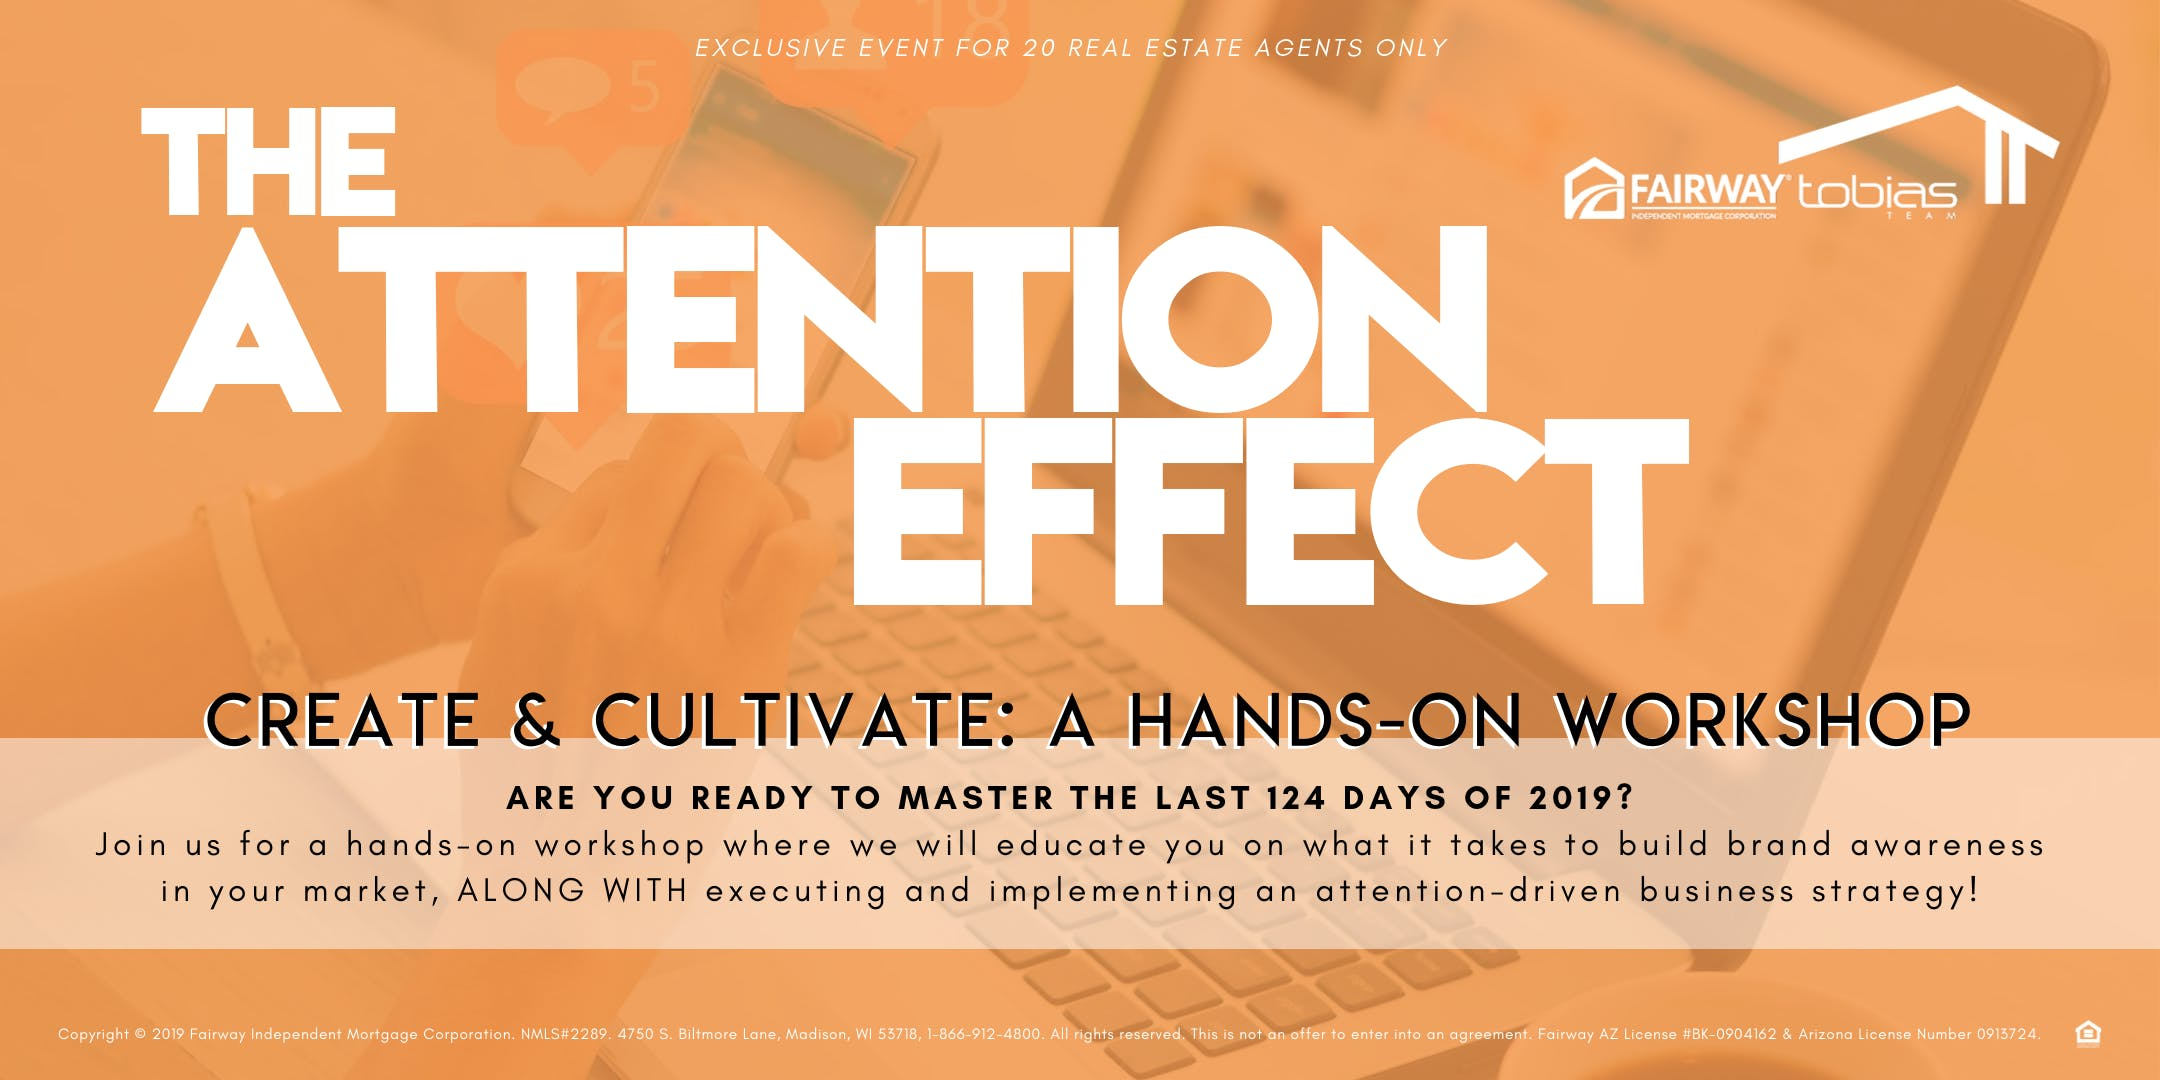 The Attention Effect - Exclusive Event